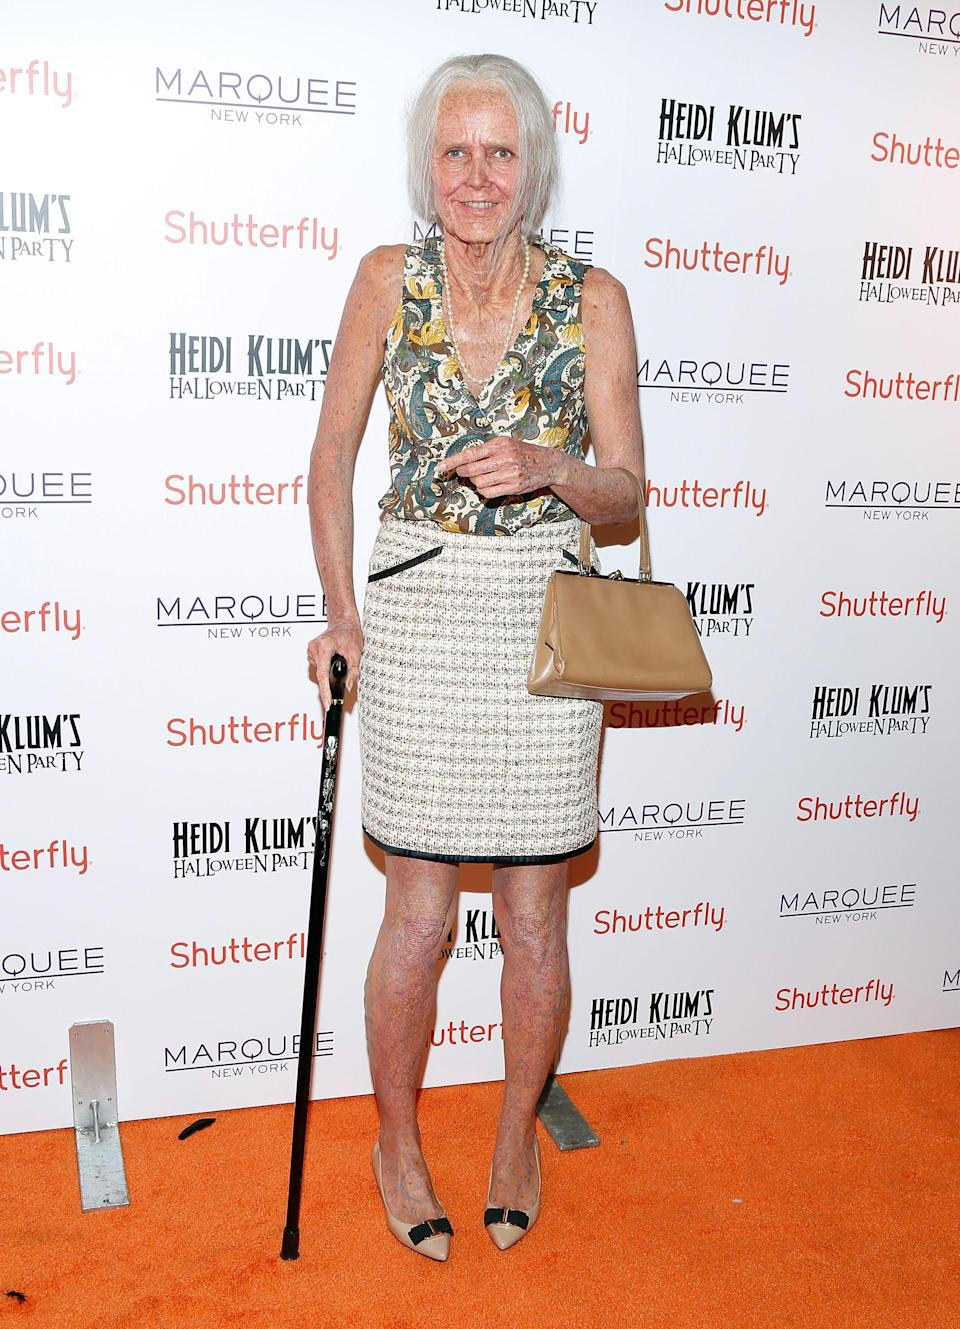 In 2013, Klum attended her party dressed as a 95-year-old version of herself, complete with varicose veins and a walking stick.<em> [Photo: Getty]</em>